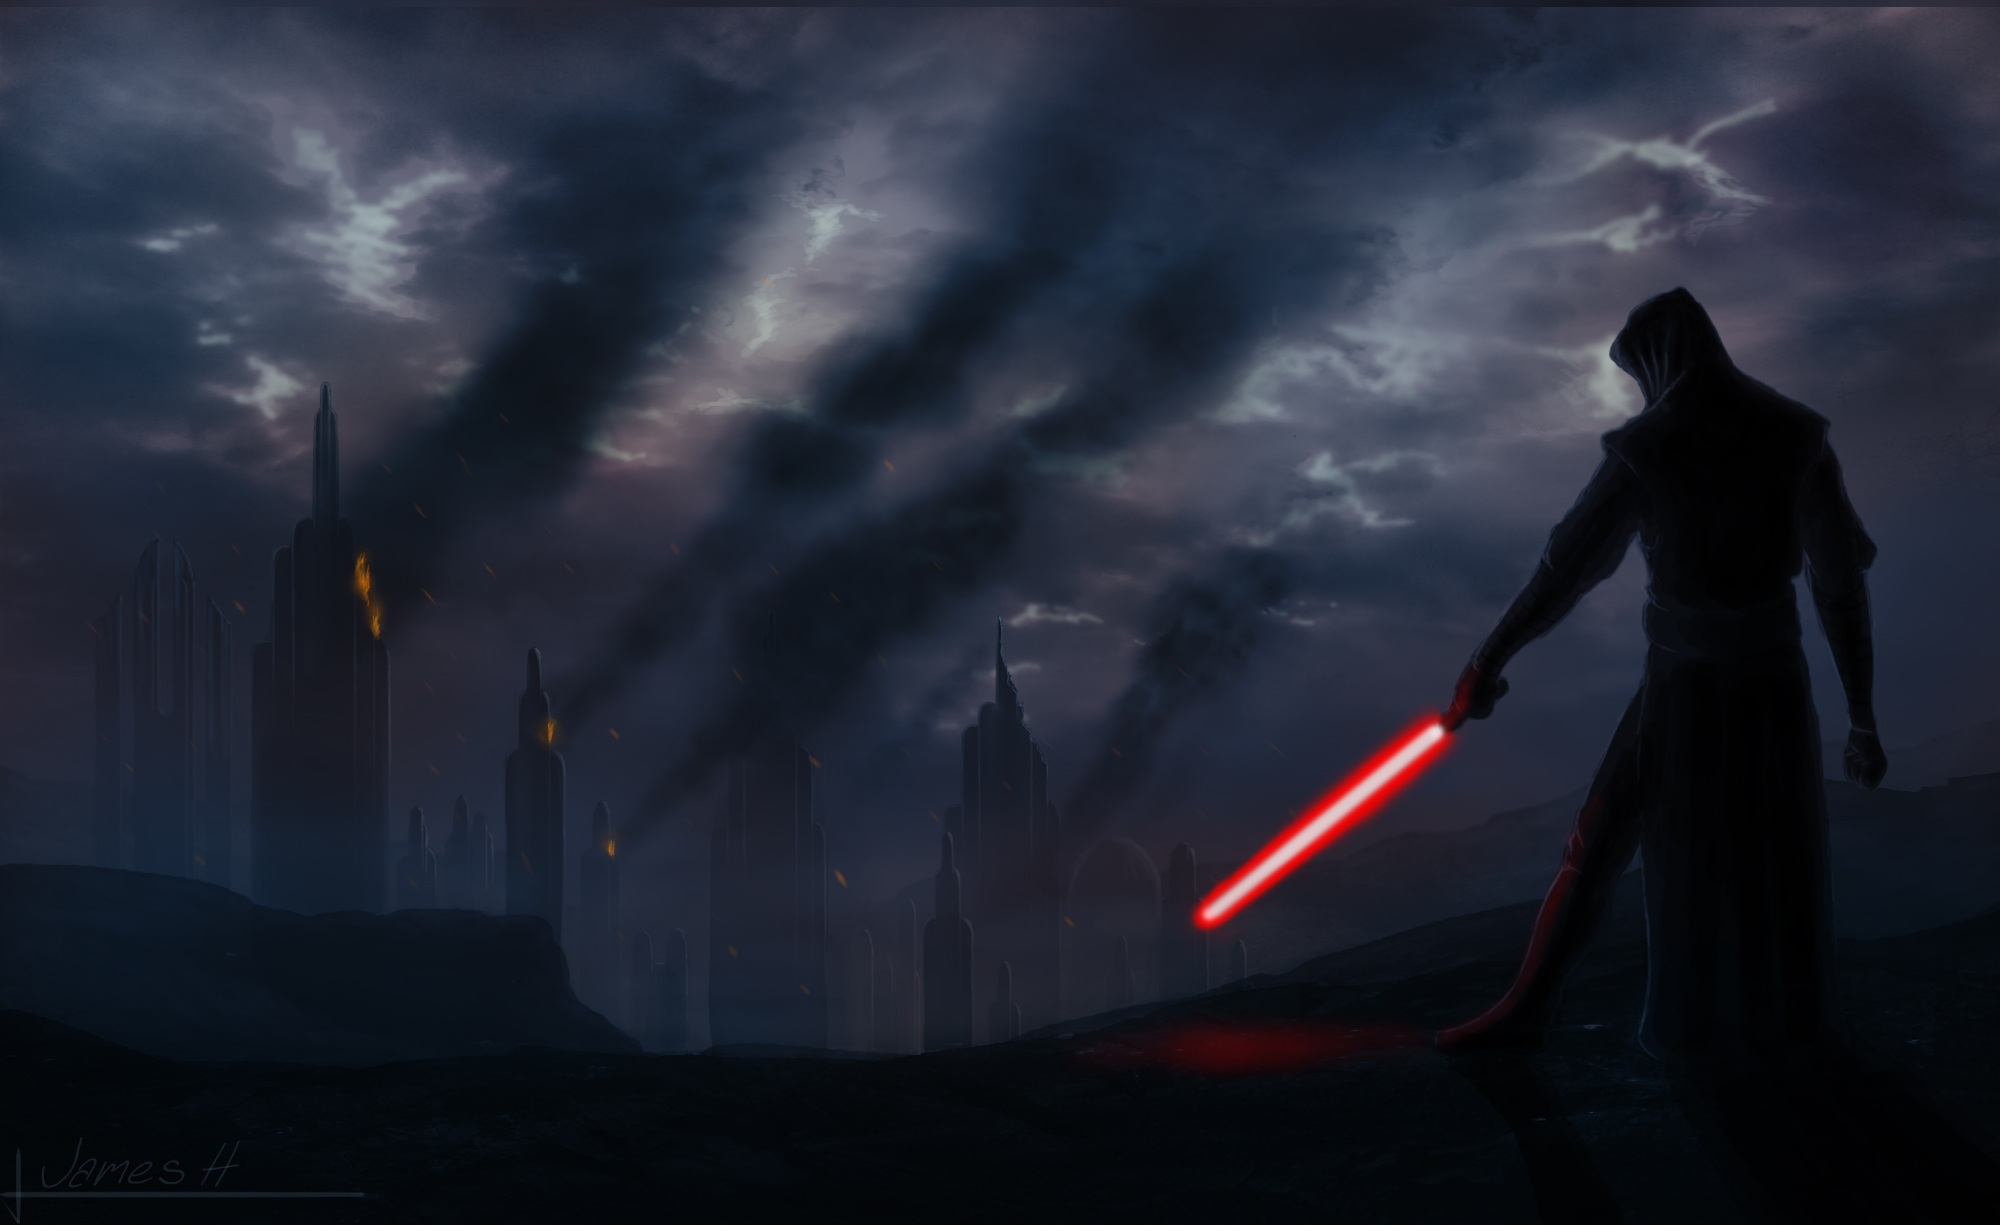 FunMozar Star Wars Wallpapers Part 4 2000x1225